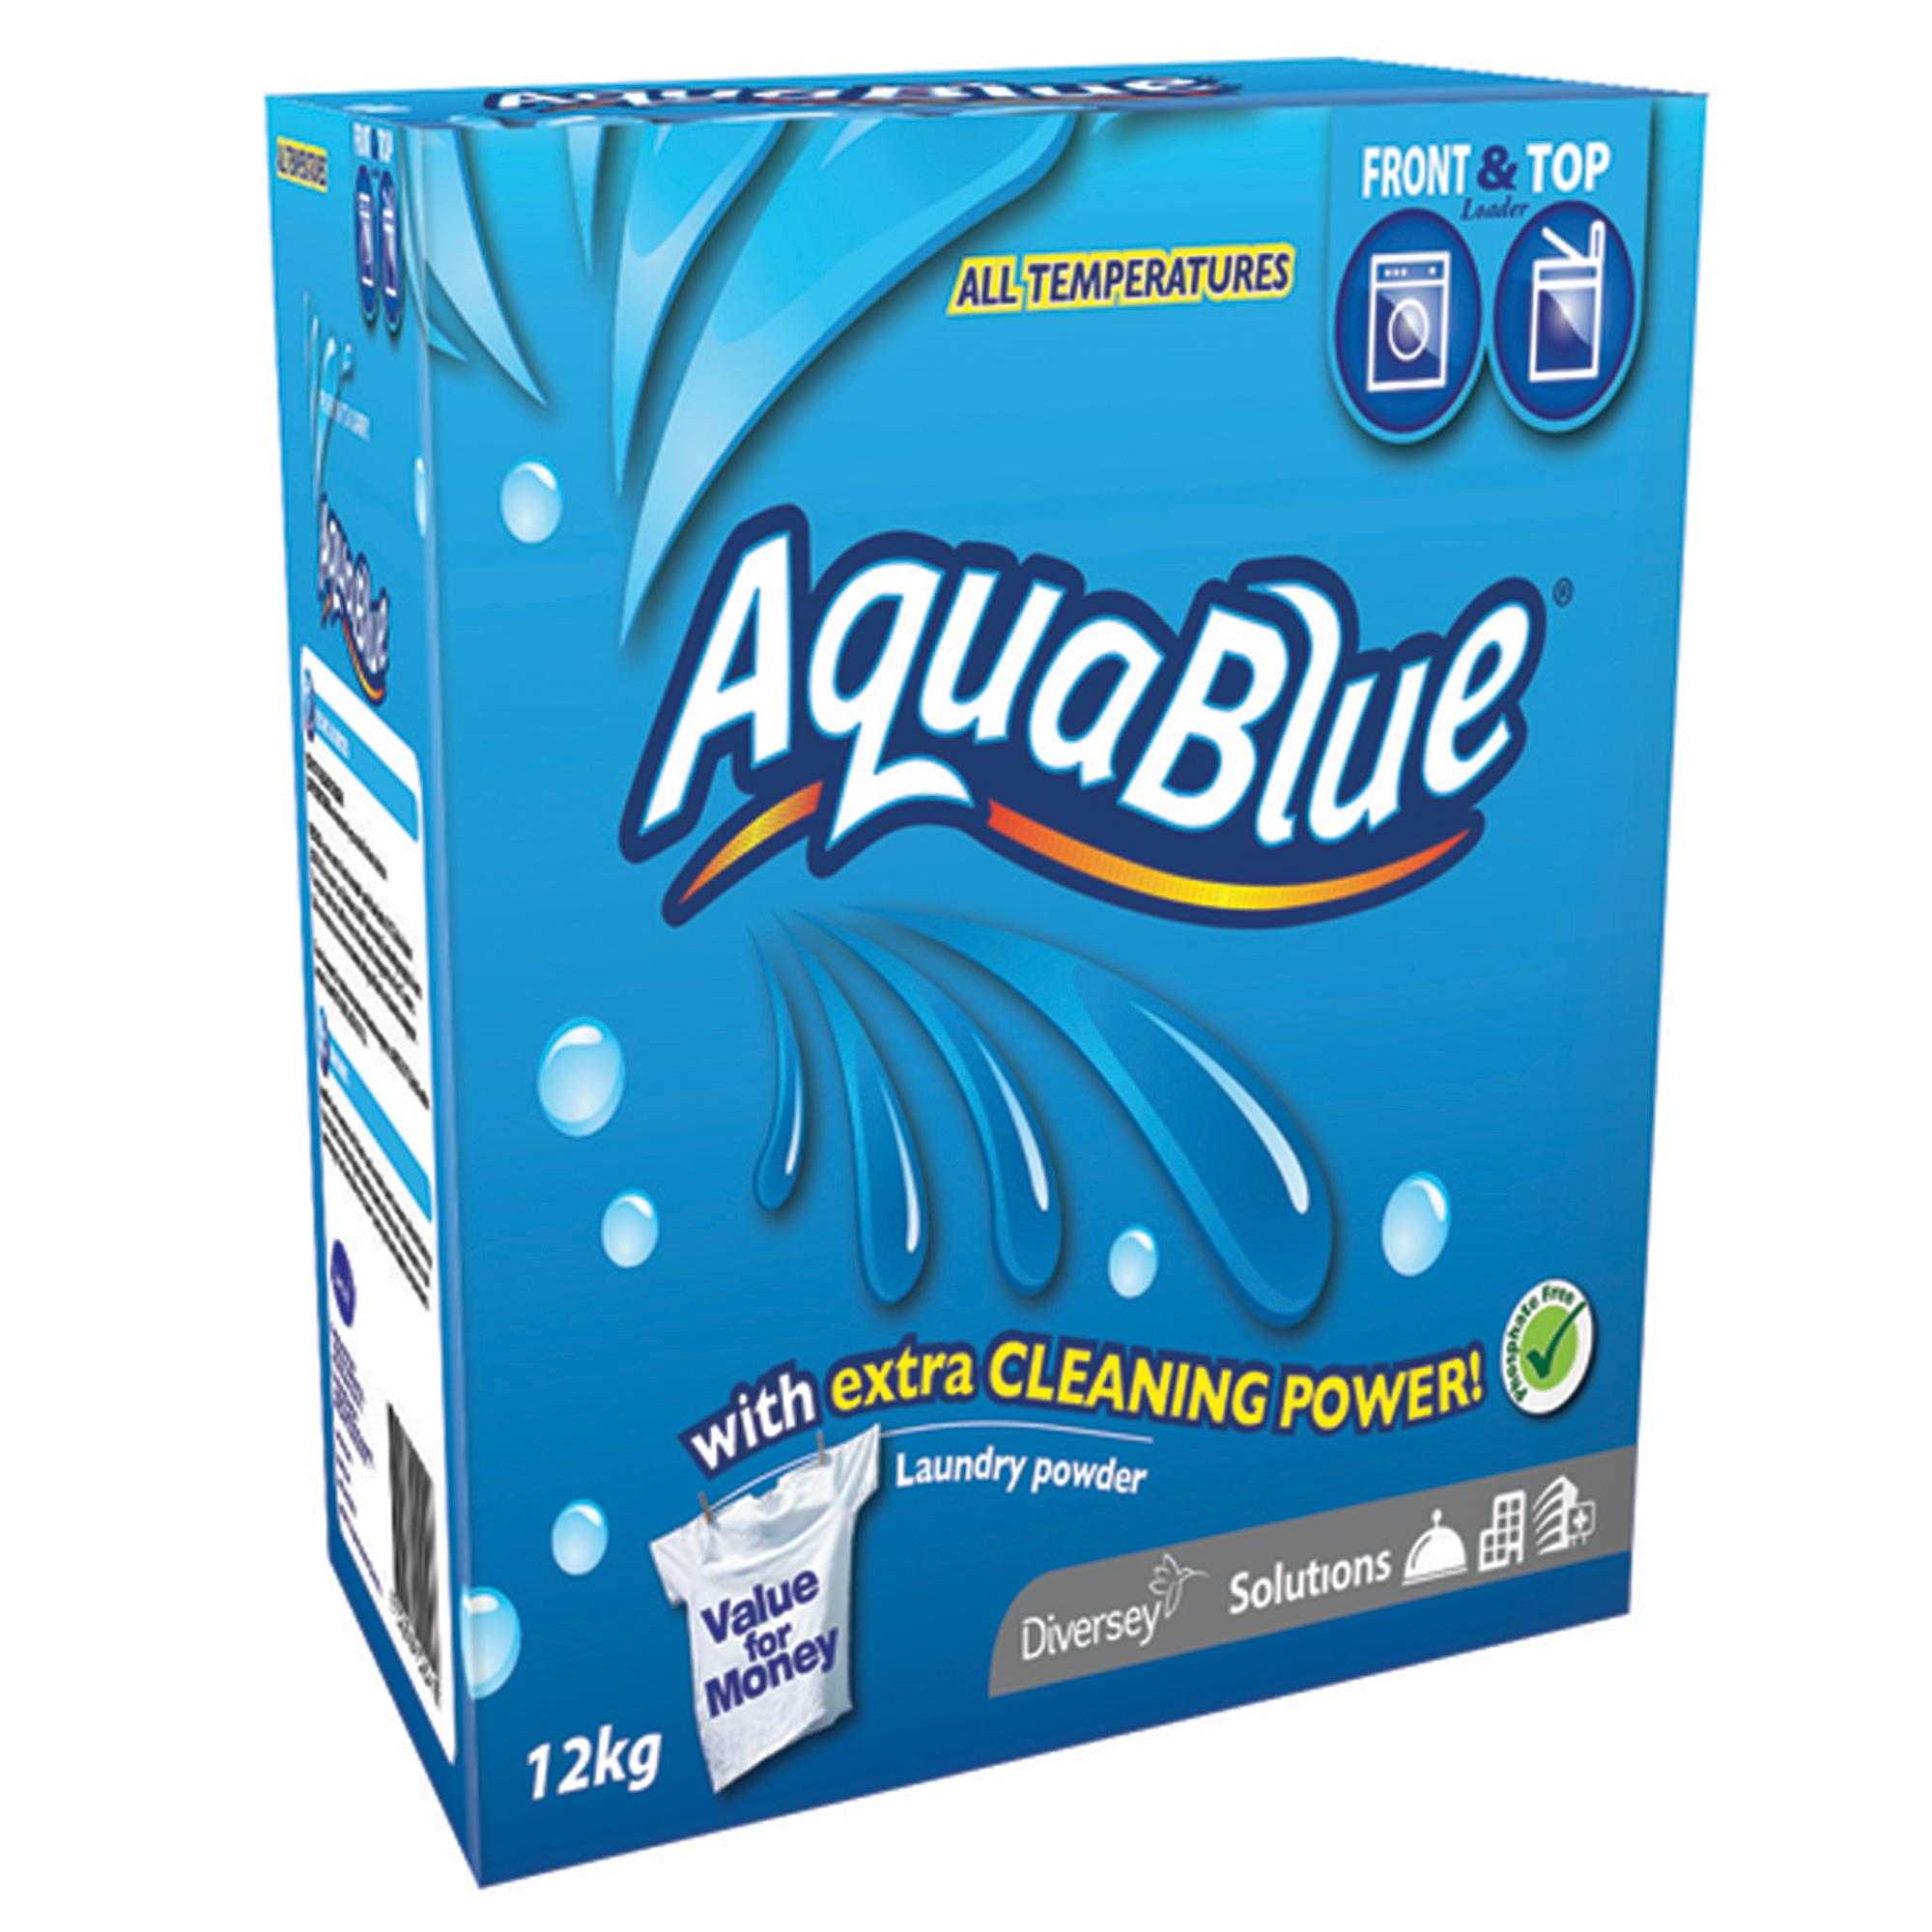 5637414%20Aqua%20Blue%20F_T%20Laundry%20Powder%20Box%20AU%2012kg%202000x2000px-1.jpg